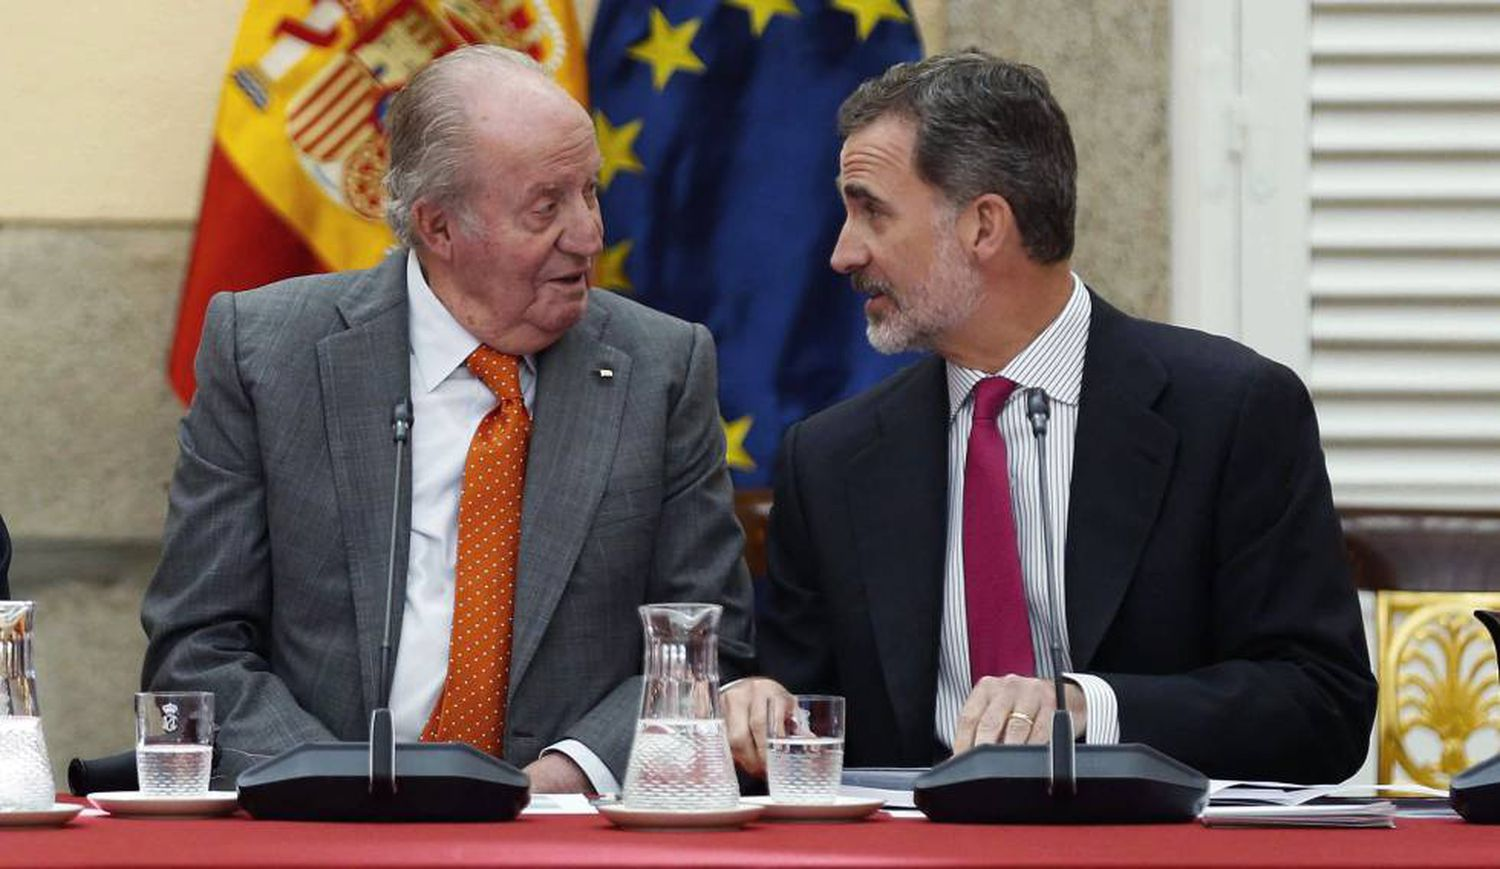 Spain's emeritus king Juan Carlos I with his son, King Felipe VI, in a file photo from 2019.